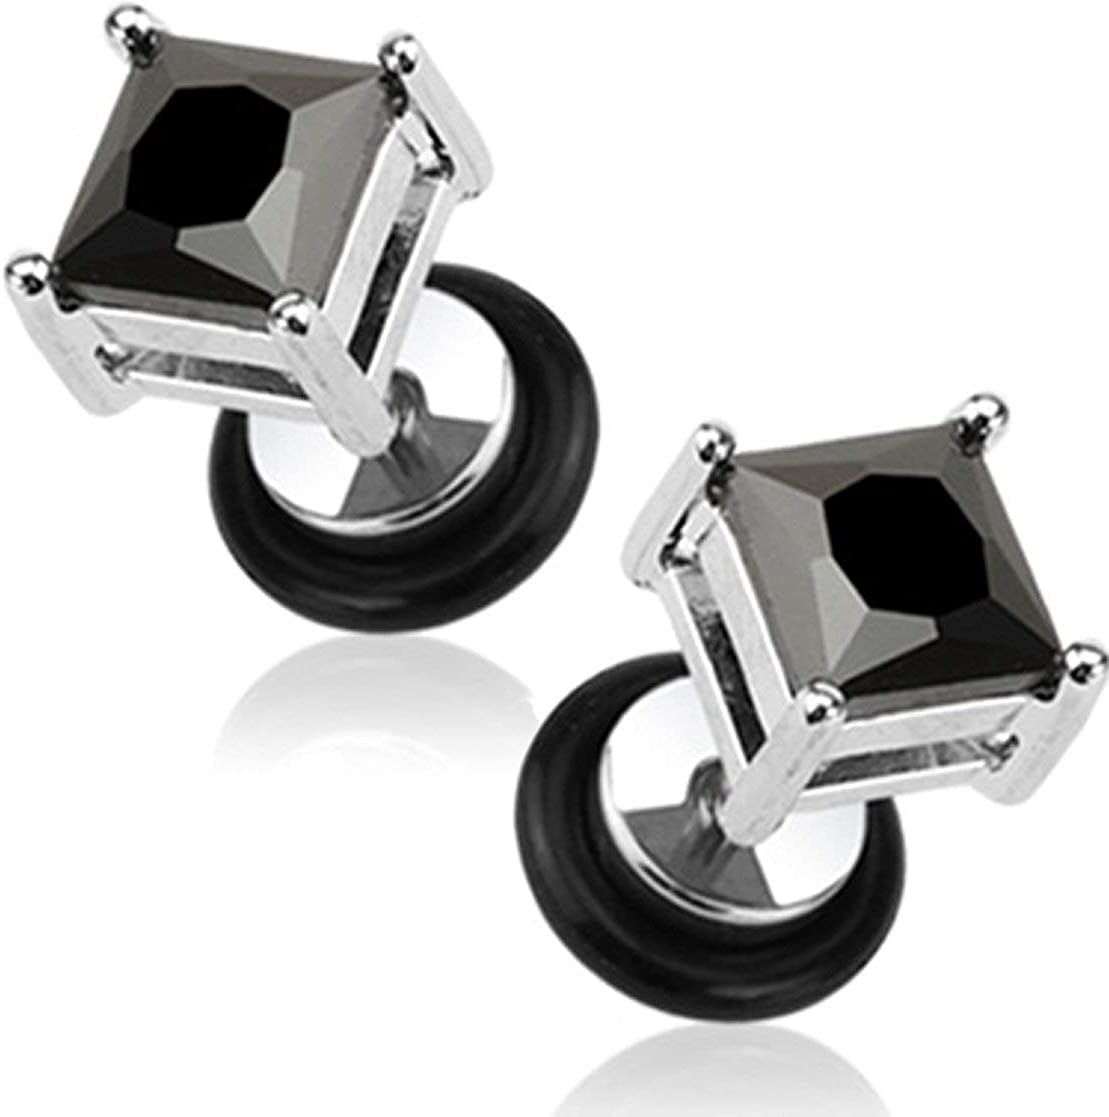 Forbidden Body Jewelry 16g Surgical Steel Square Crystal Dia Cut Cheater Plug Earrings (Choose CZ Color)